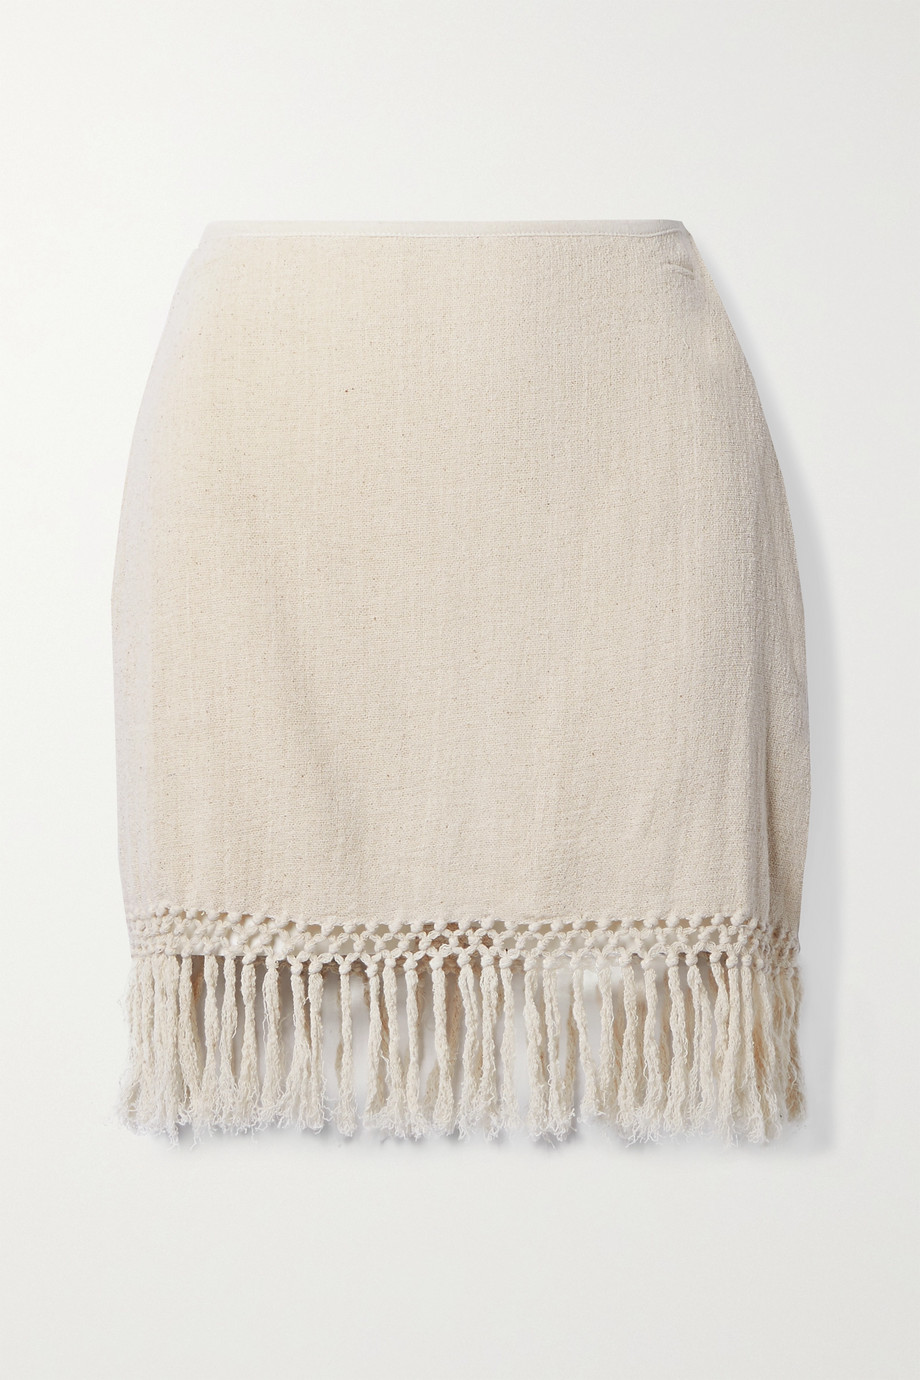 Savannah Morrow The Label + NET SUSTAIN The Jasmine fringed macramé ramie mini skirt